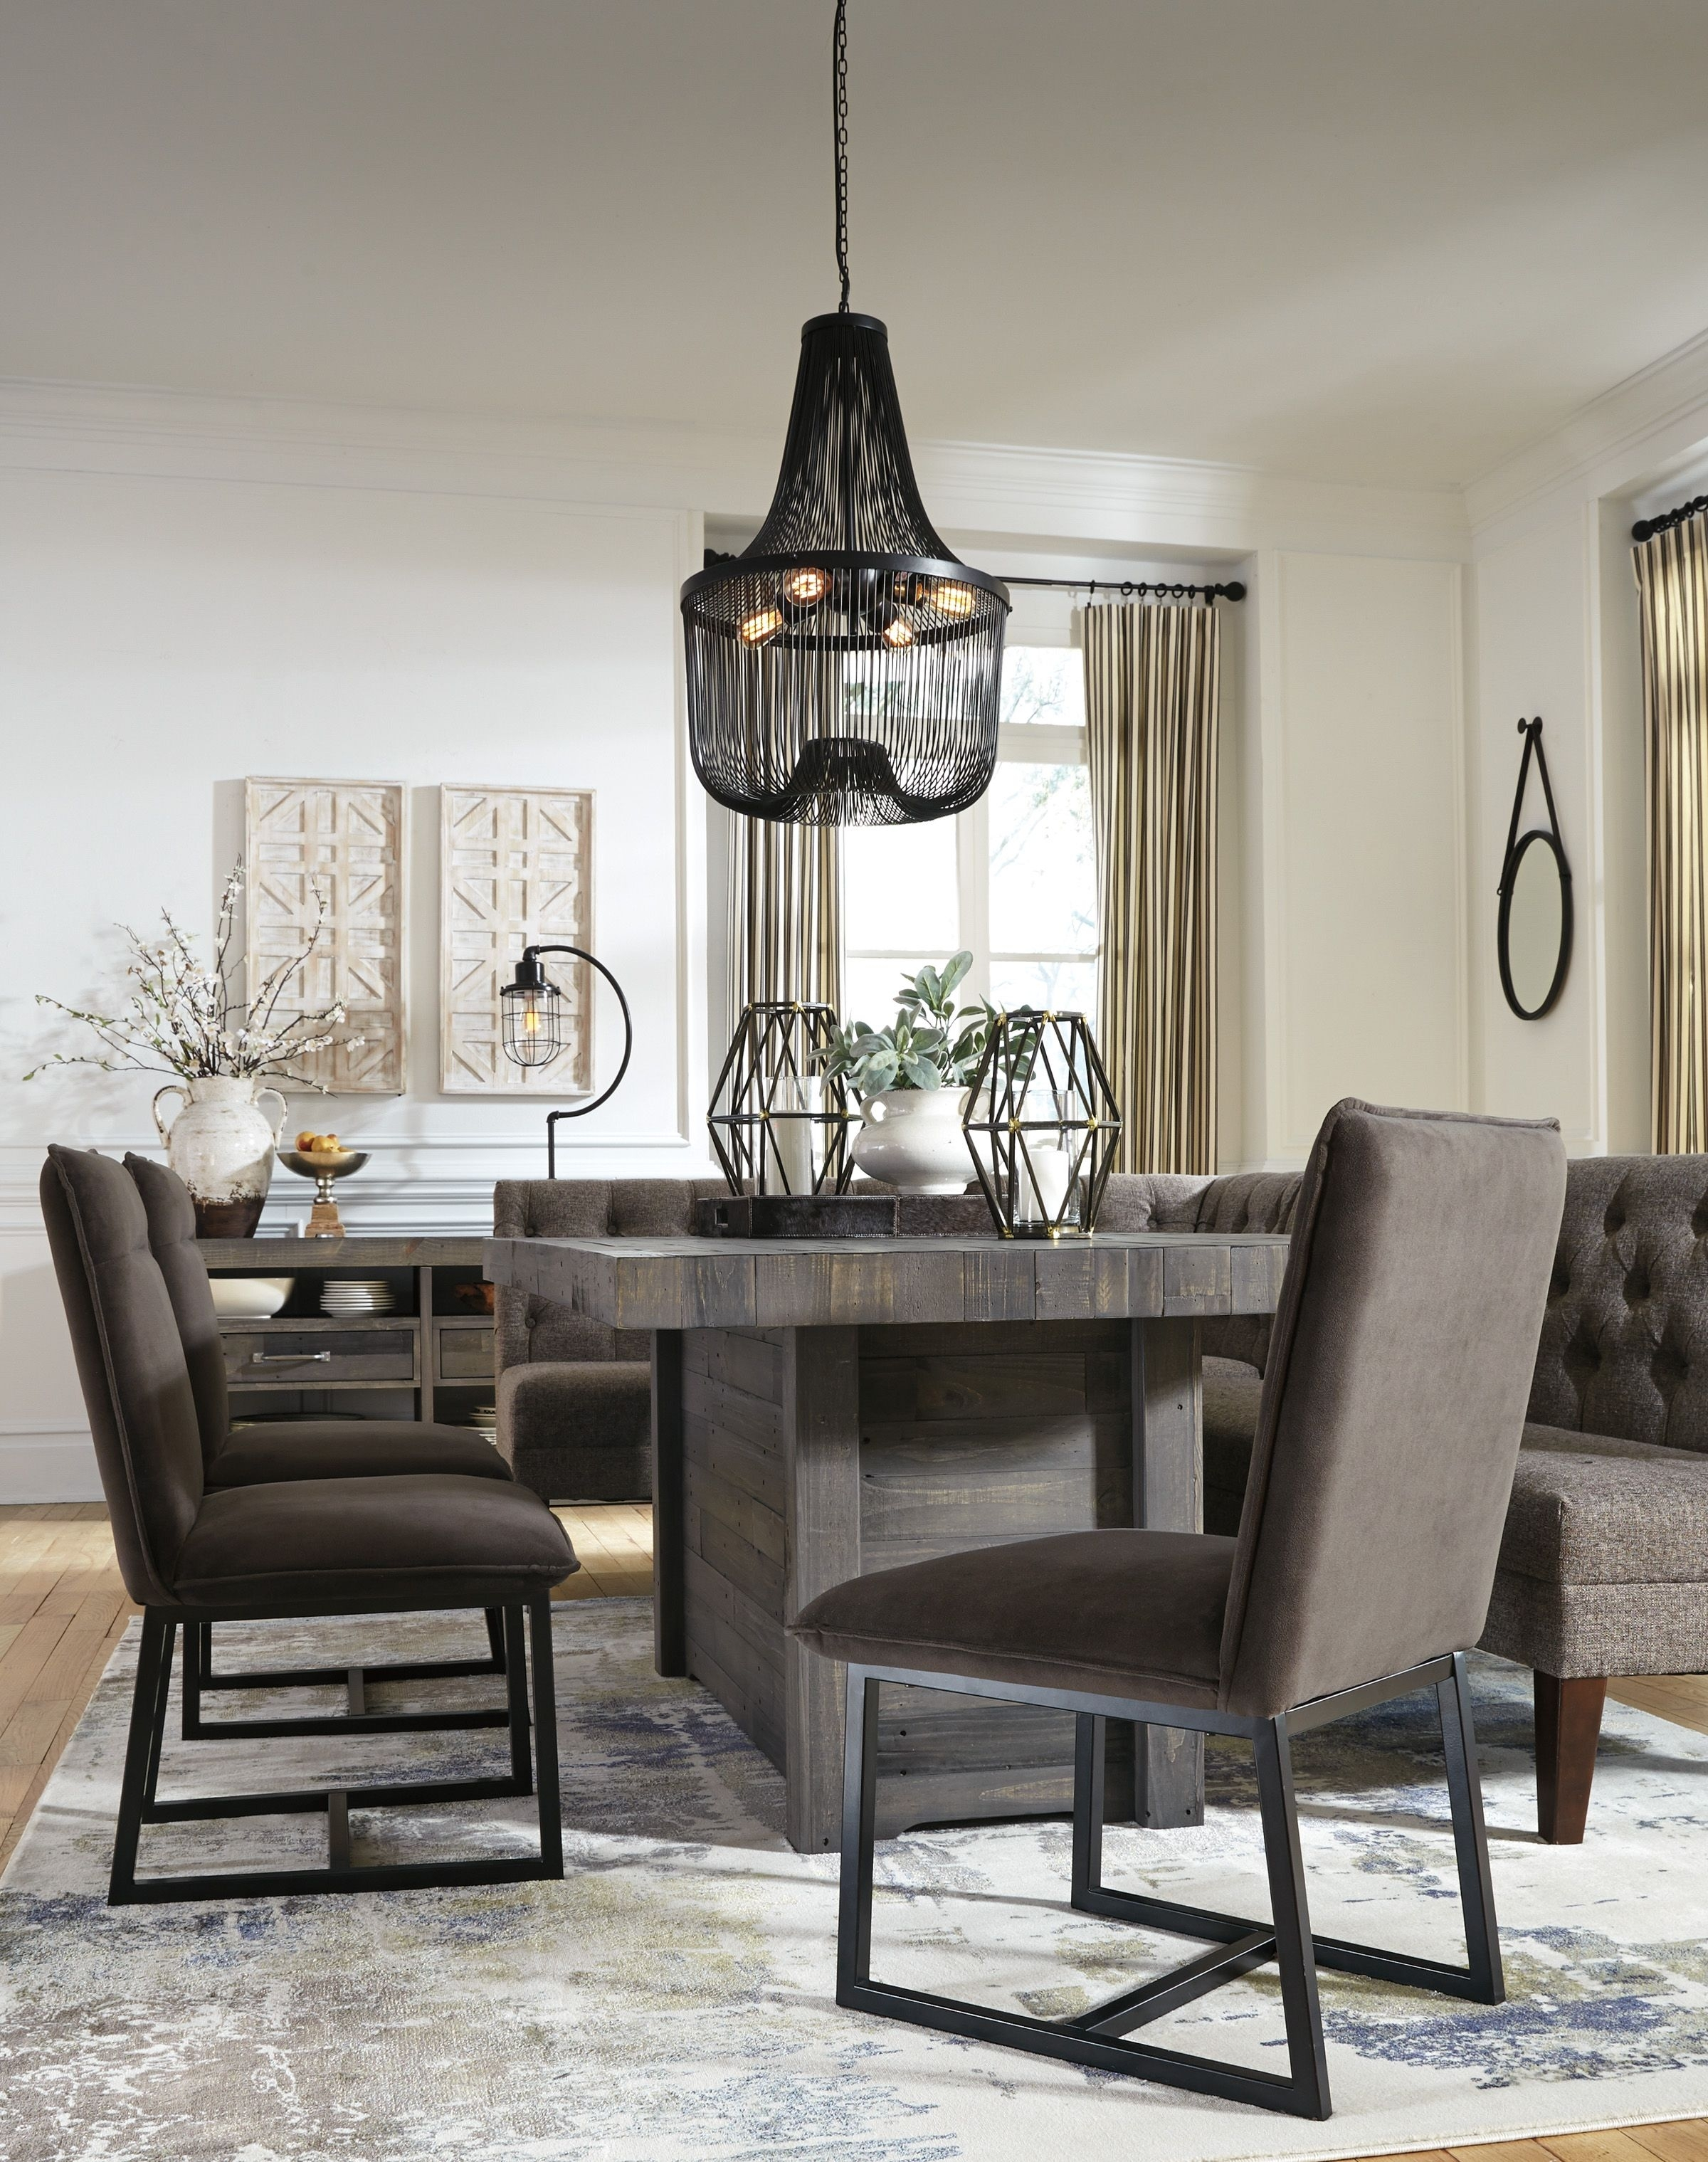 Mayflyn 7 Piece Casual Dining | Contemporary Living | Pinterest Regarding 2017 Helms 7 Piece Rectangle Dining Sets (Image 9 of 20)